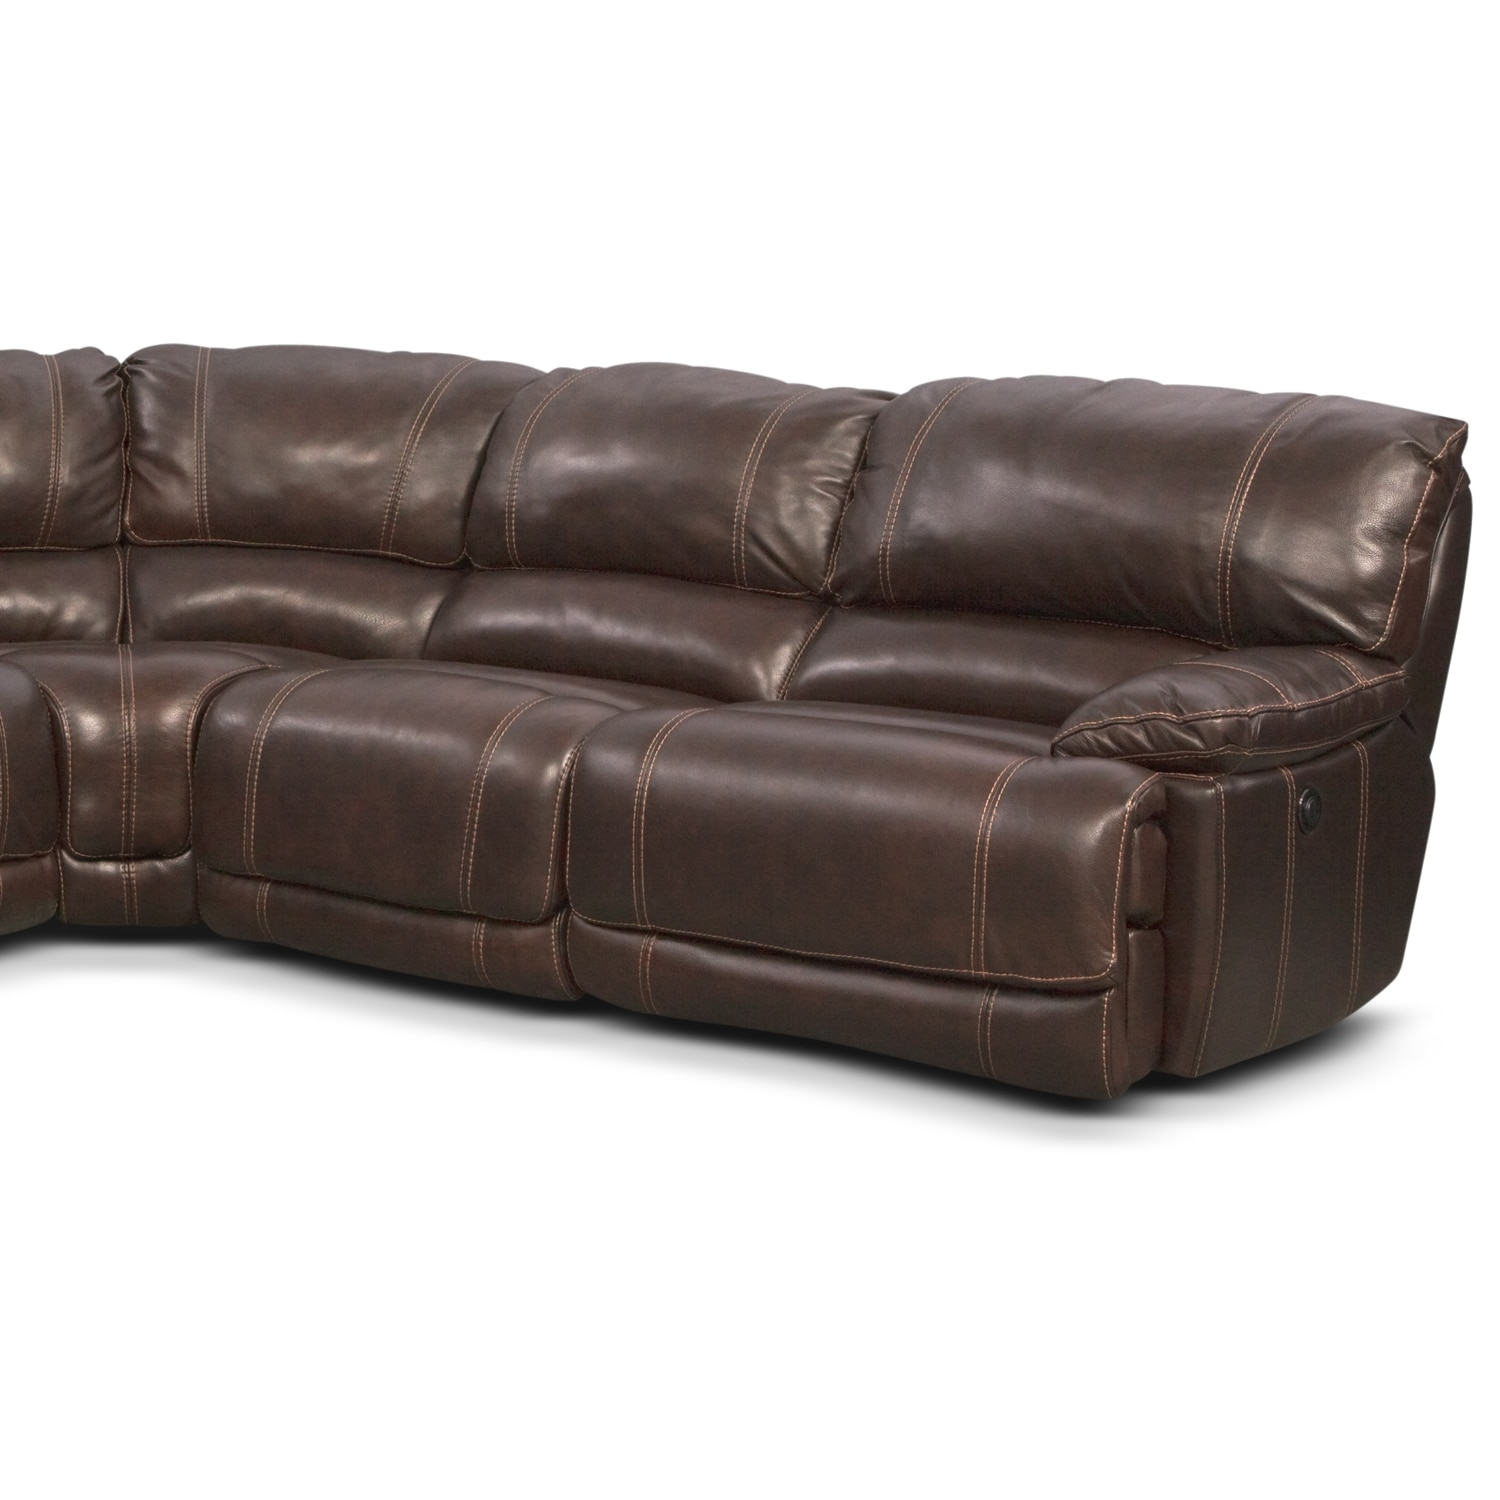 Clinton brown 5 pc power reclining sectional furniturecom for 5 pc sectional sofas